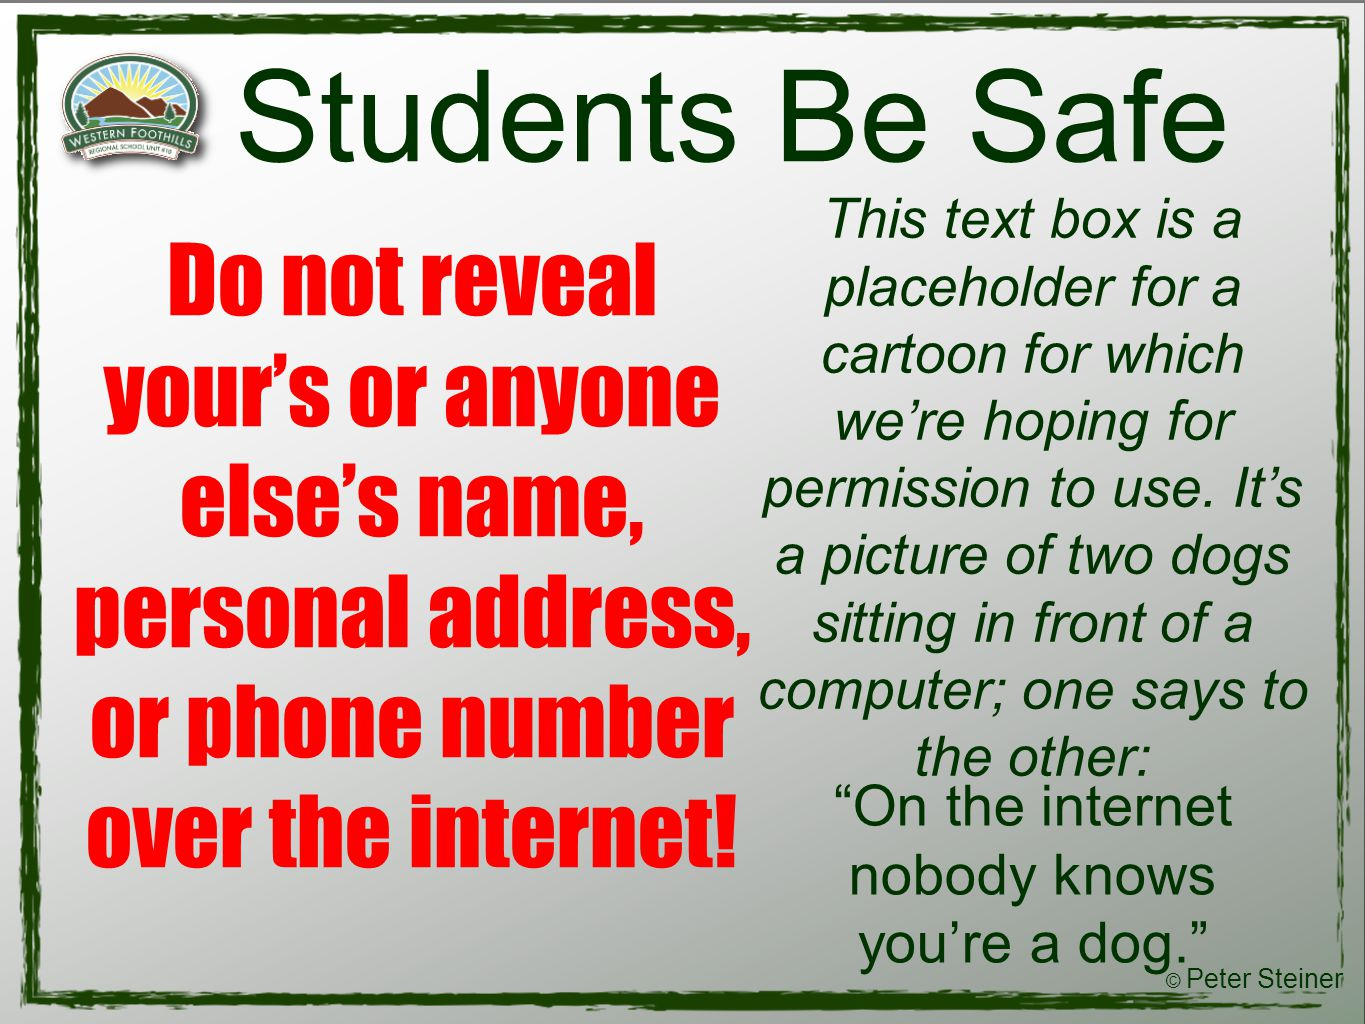 Students Be Safe Do not reveal your's or anyone else's name, personal address, or phone number over the internet.